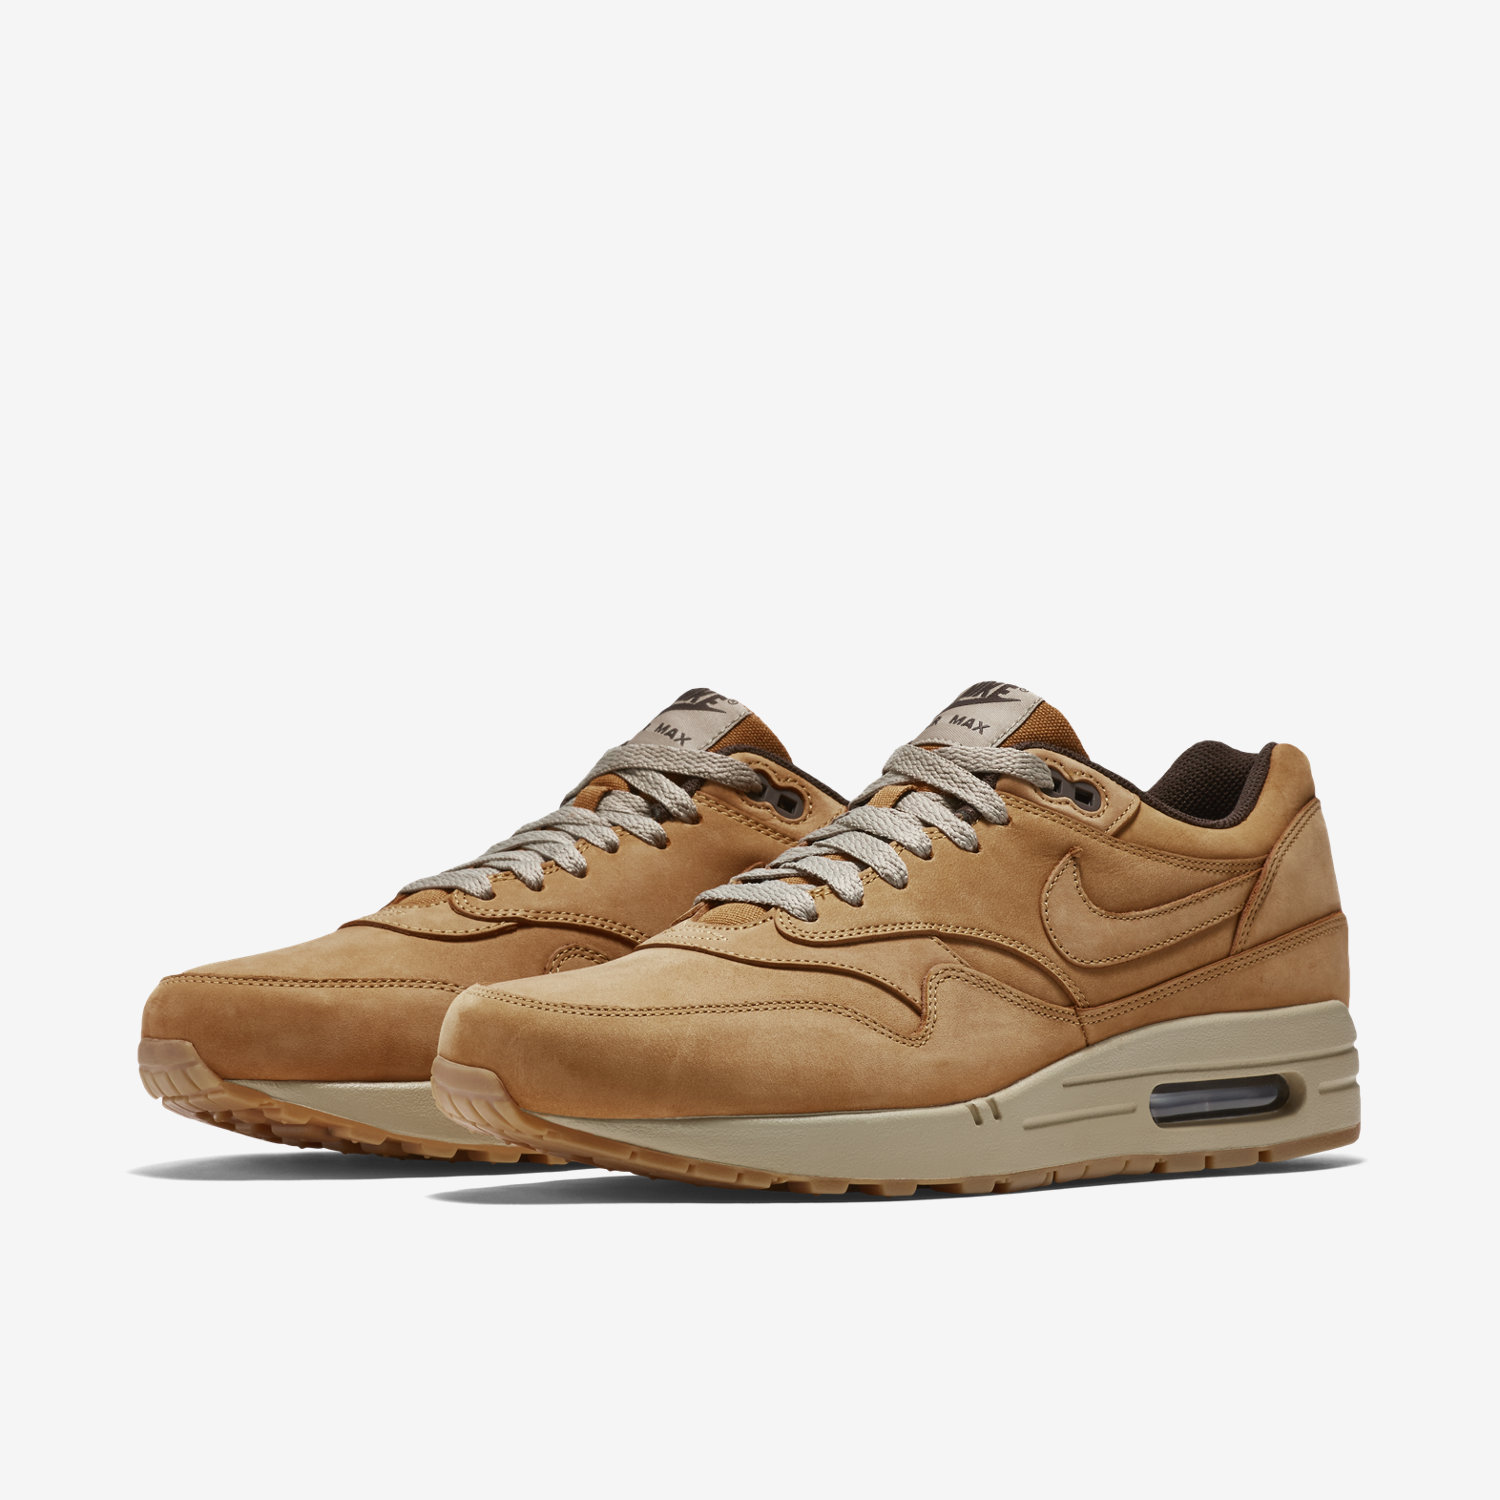 Cheap Nike Air Max 1 Ultra 2.0 LE Men's Shoe. Cheap Nike AU